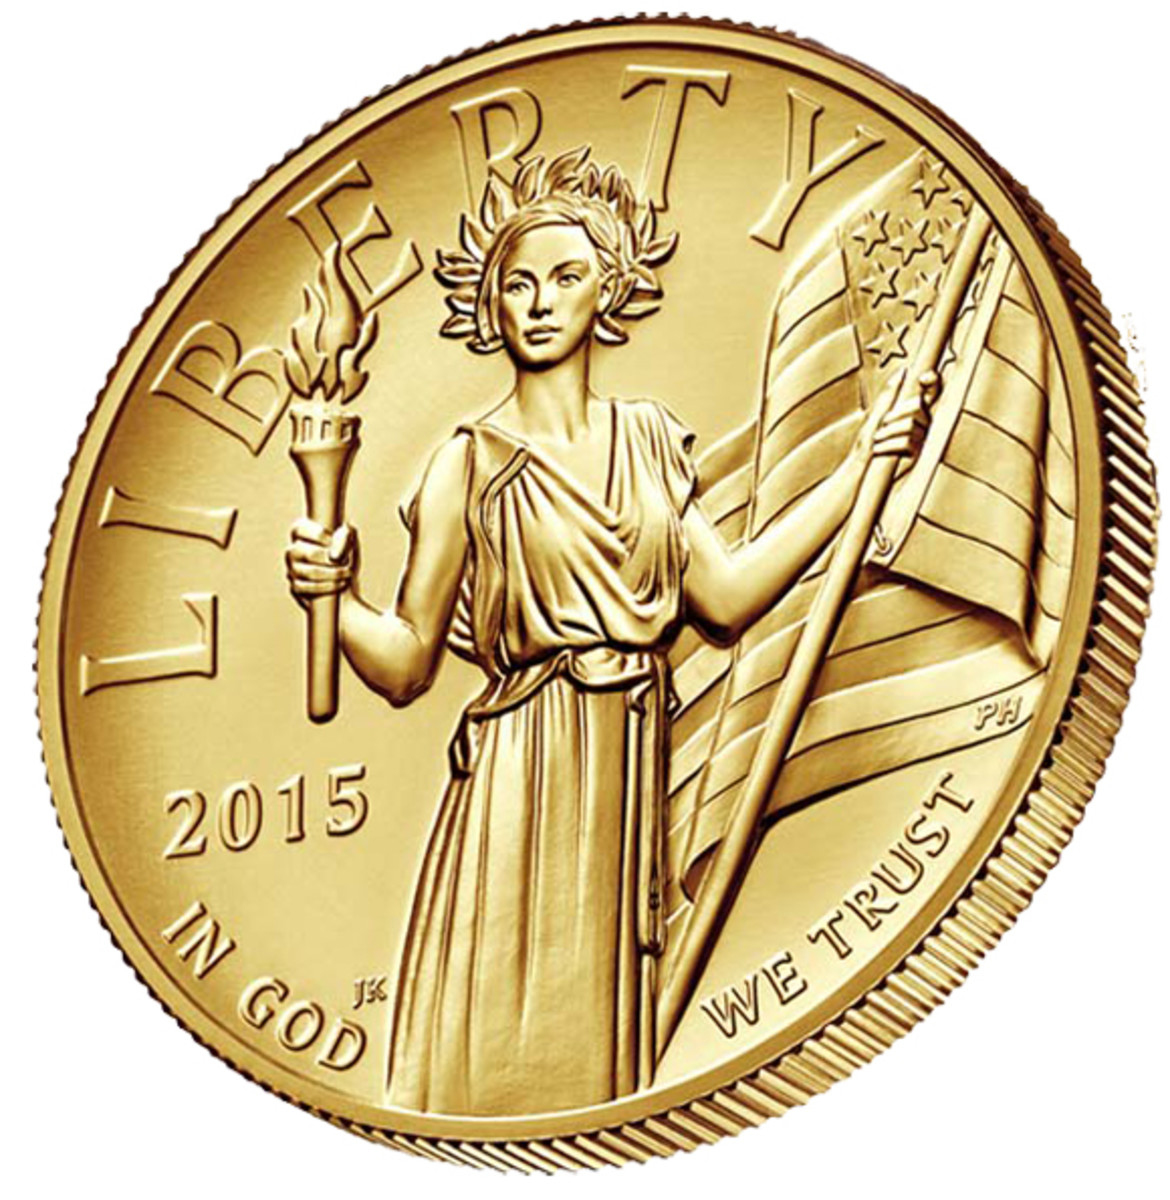 Sales of the 2015-W High Relief American Liberty gold coin have dropped dramatically since going on sale.